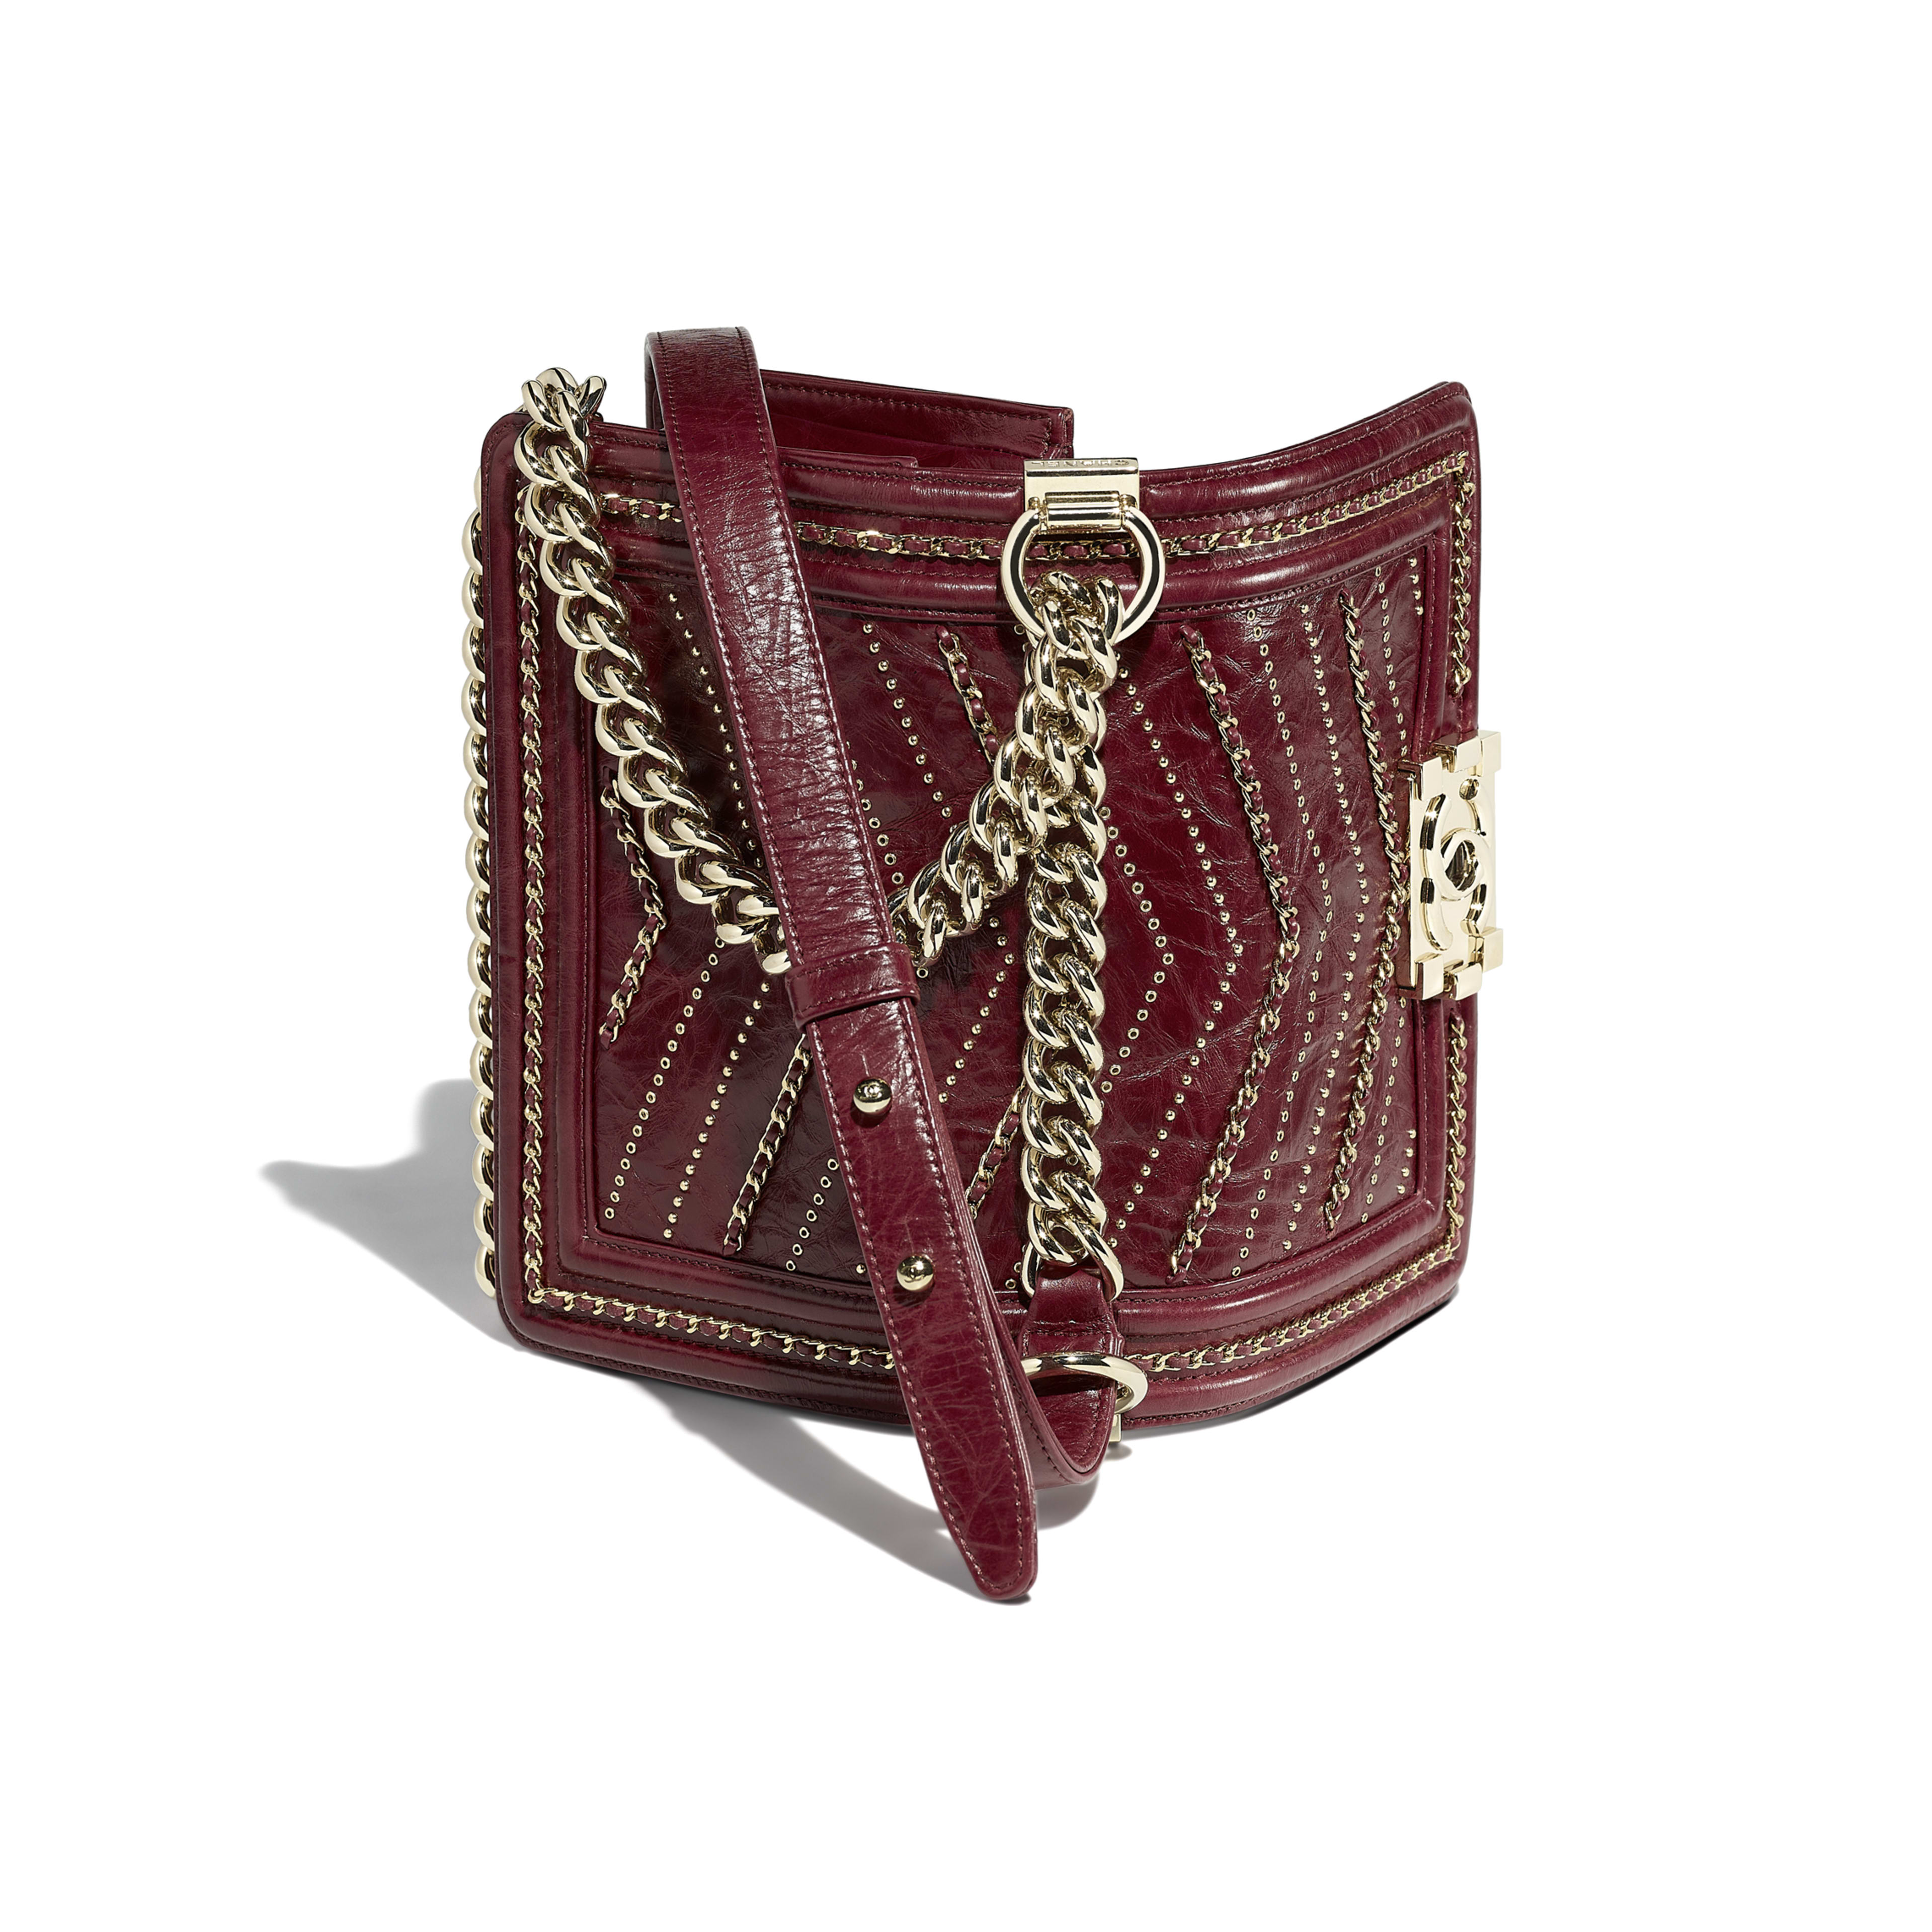 Small BOY CHANEL Handbag Crumpled Calfskin & Gold-Tone Metal Red -                                            view 3 - see full sized version